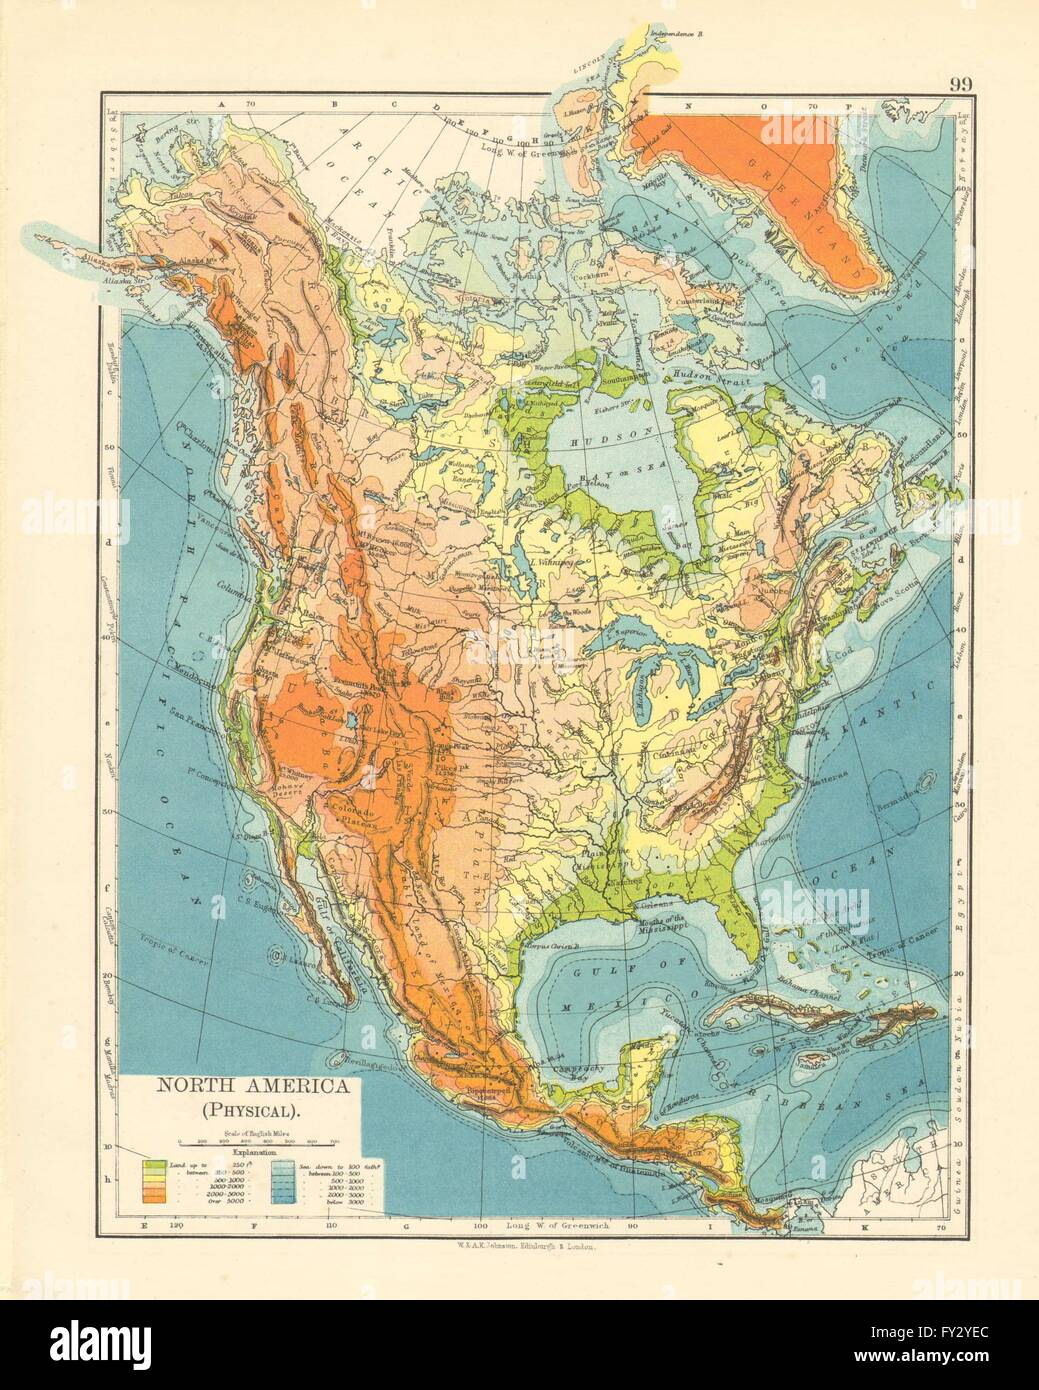 NORTH AMERICA PHYSICAL Relief Key mountains heights Ocean depths